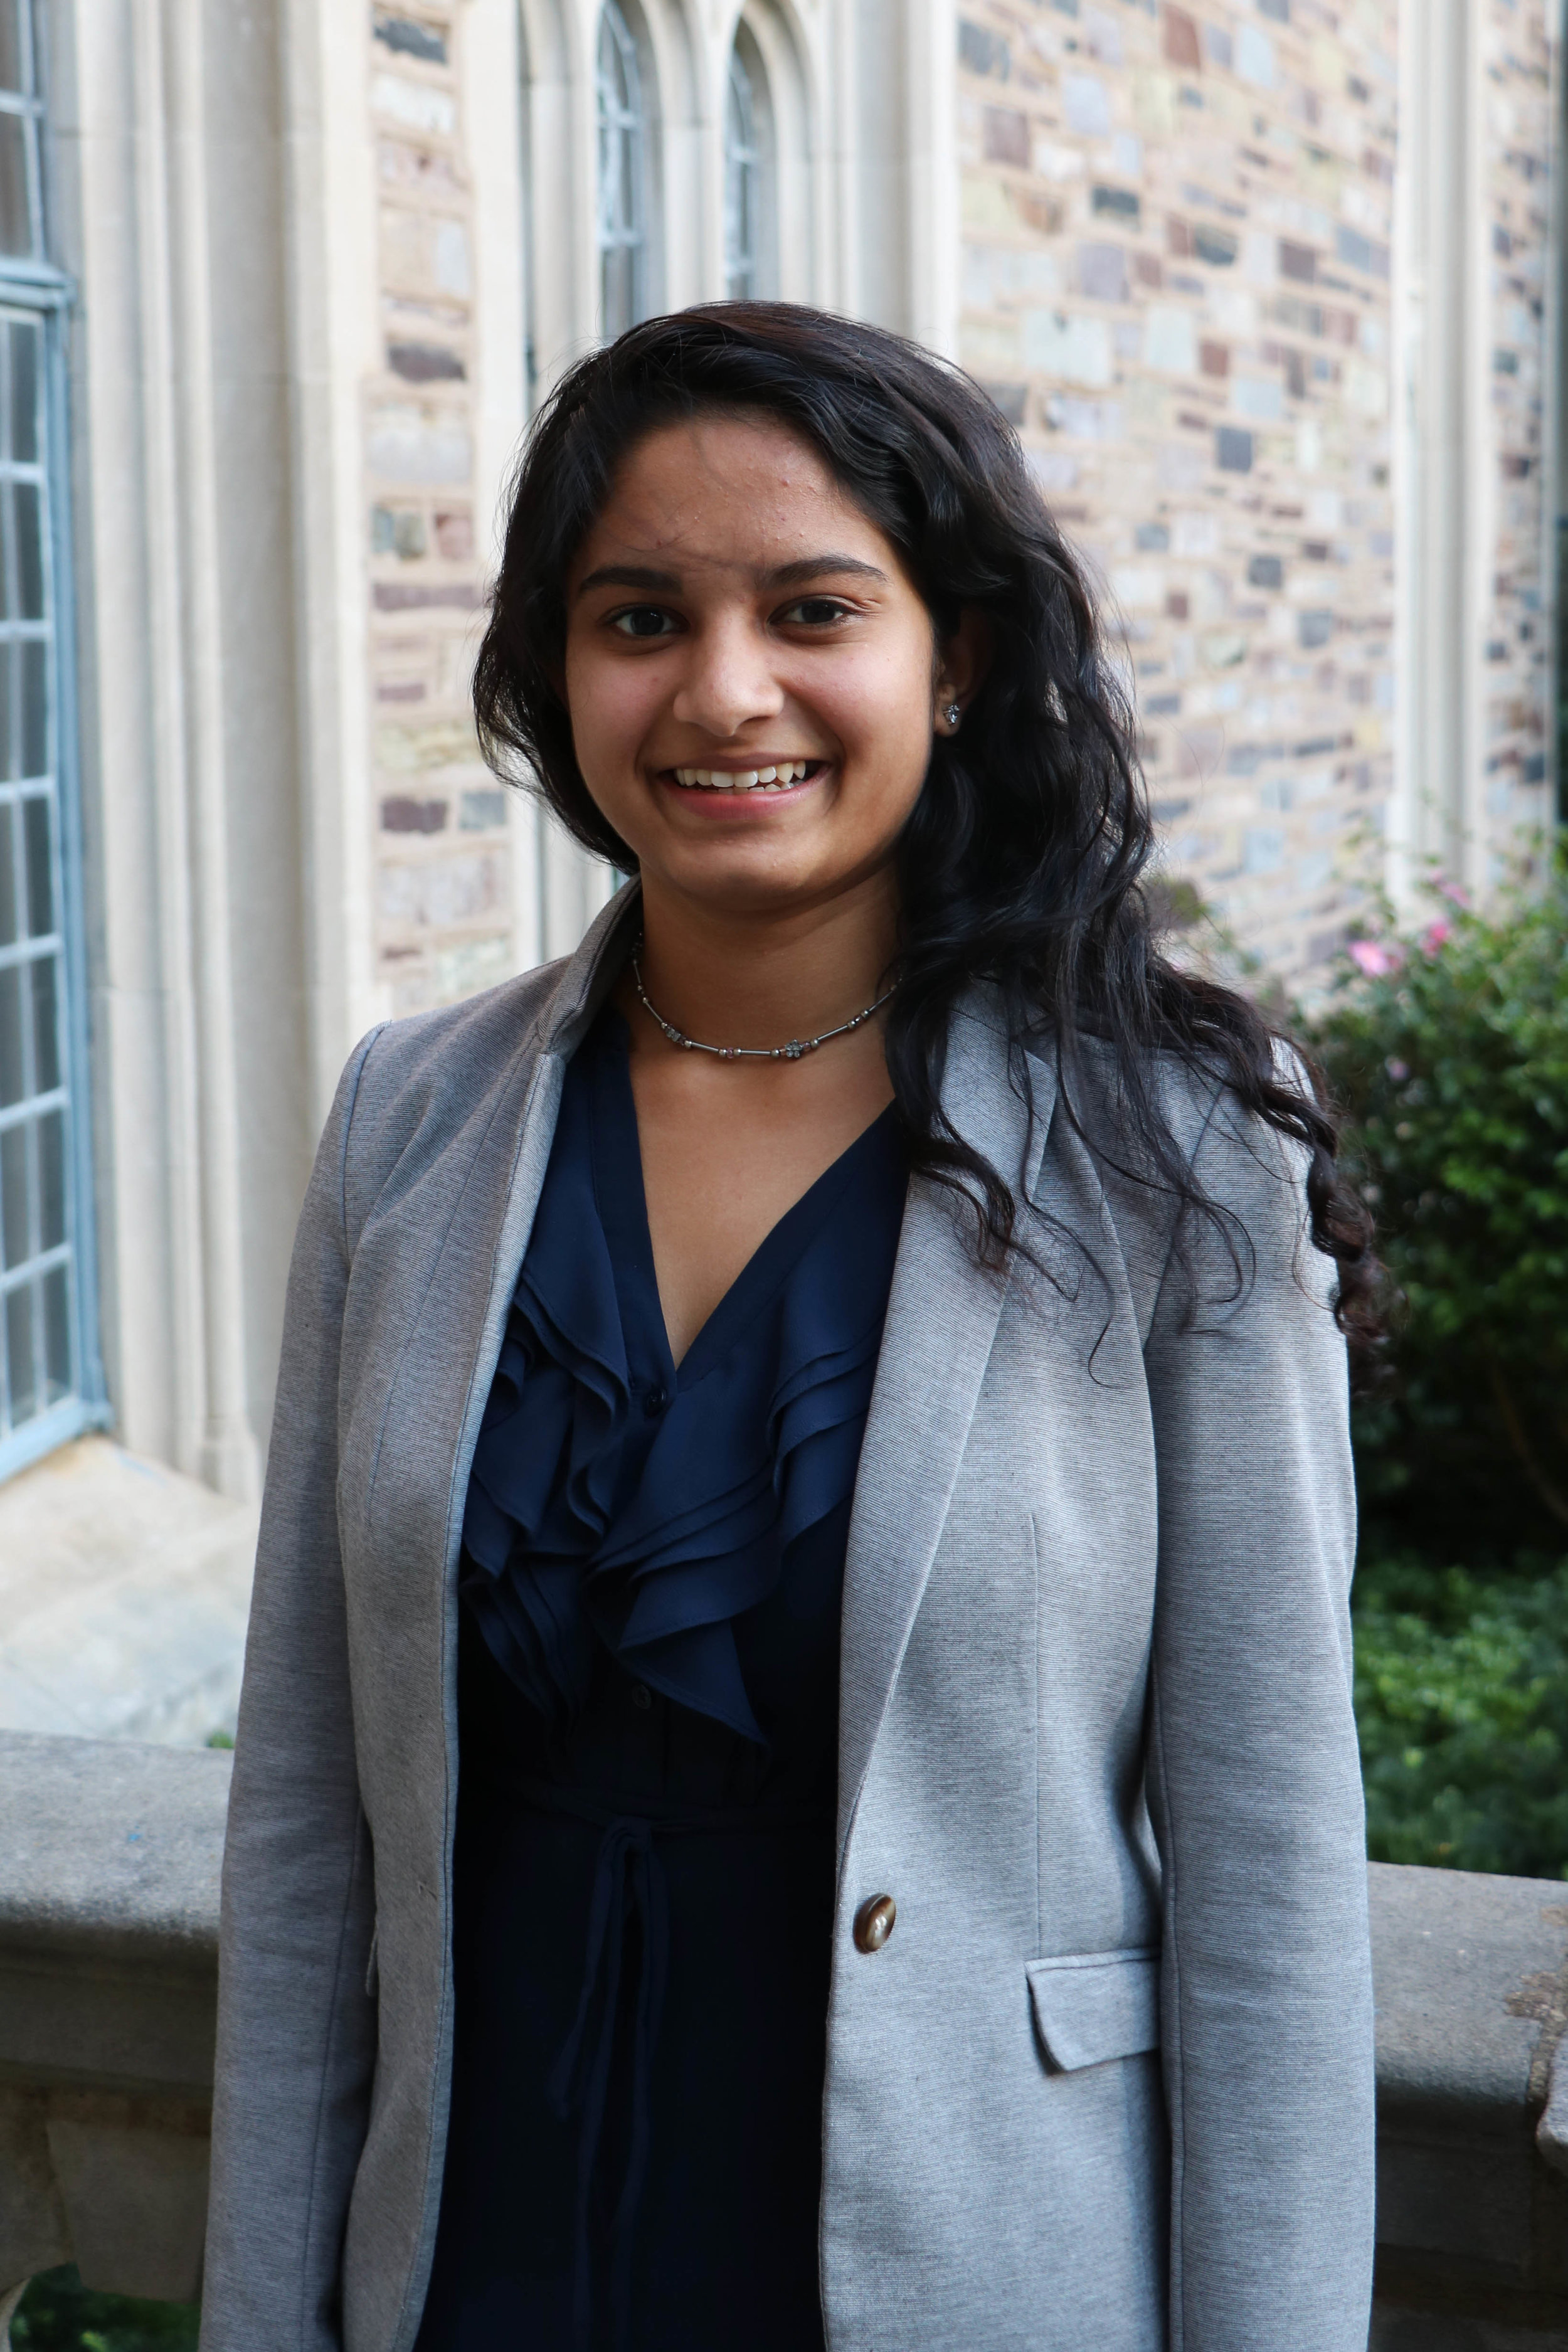 NIKHITA SALGAME   Co-Director of Conference  Nikhita is a Sophomore interested in majoring in the Woodrow Wilson School with a certificate in East Asian Studies. She participated in the Bridge Year Program in Kunming, China prior to coming to Princeton and worked at an environmental NGO concerned with reducing pesticide usage and creating links between urban consumers and farmers. She has continued her interest in Chinese language and affairs by participating in the Princeton in Beijing language program this past summer and working with the PUCC Conference team these past two years! Here on campus she also serves on the Secretariat of Princeton's MUN conference and as Secretary for the International Relations Council, volunteers as an English tutor at El Centro, and edits for the Princeton Journal of East Asian Studies.